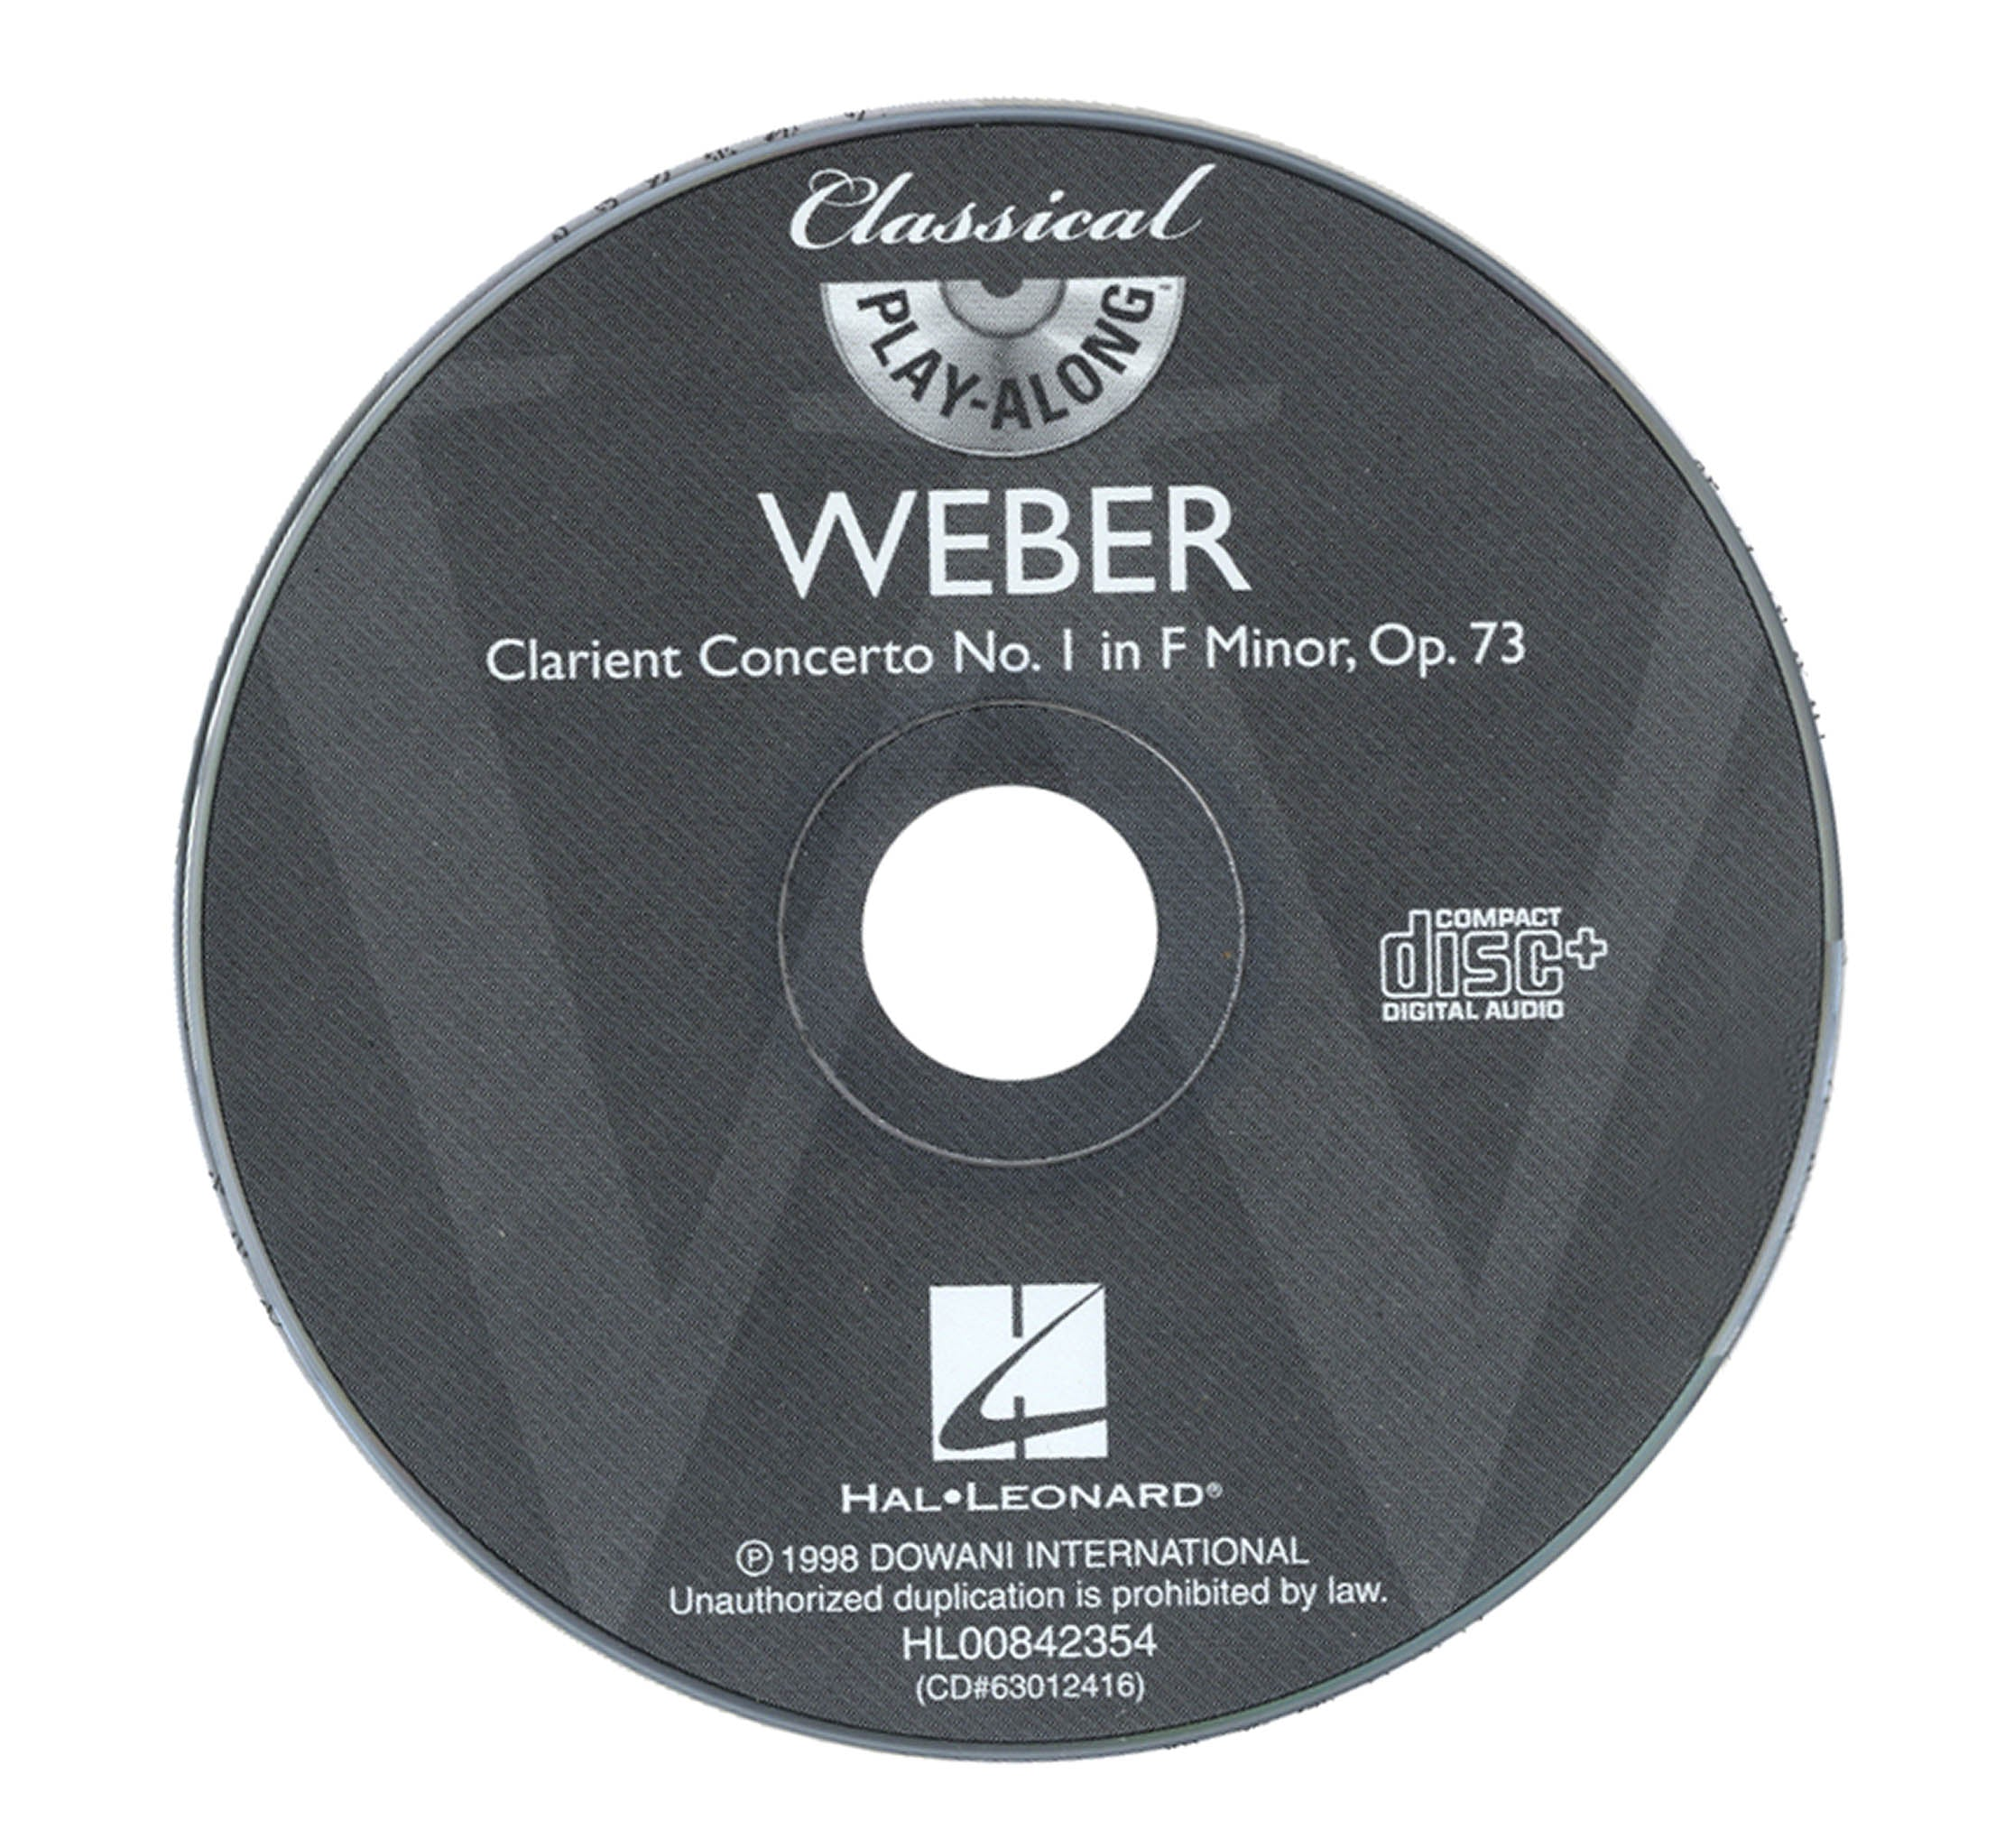 Clarinet Concerto No. 1 in F Minor, Op. 73 CD